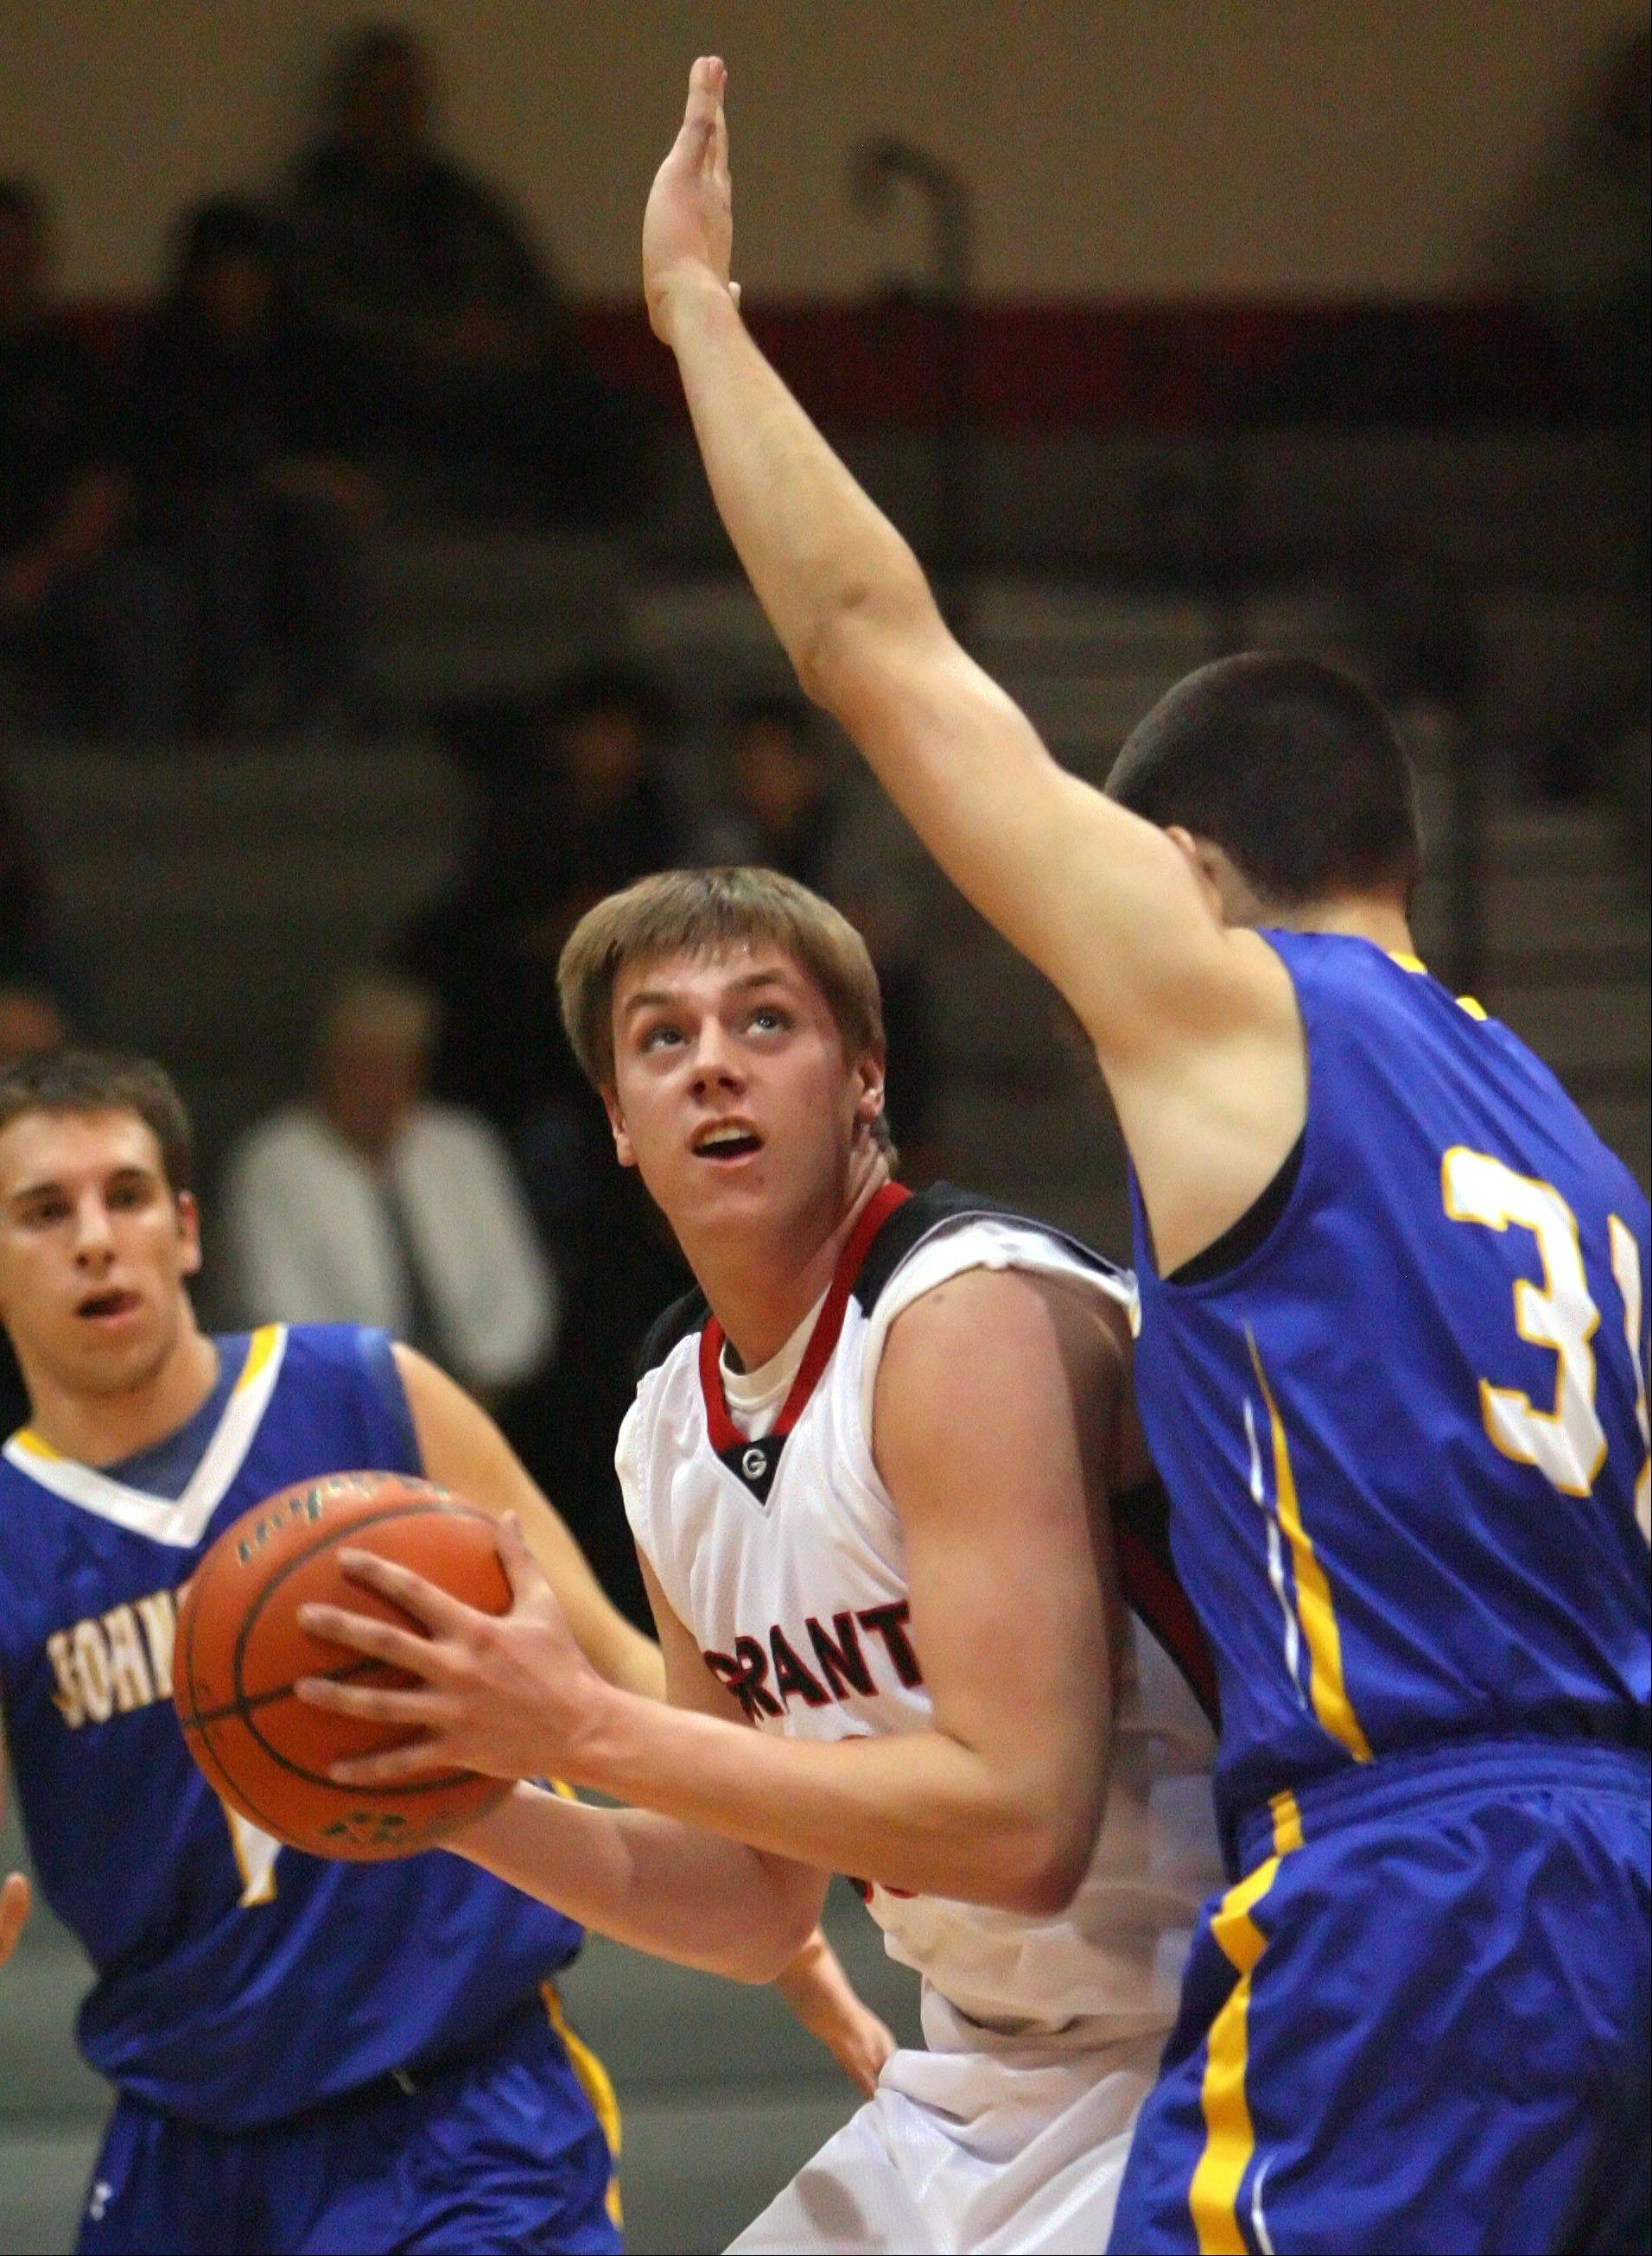 Grant's Jared Helmich, left, drives on Johnsburg's Marcus Huemann on Wednesday night at Grant.